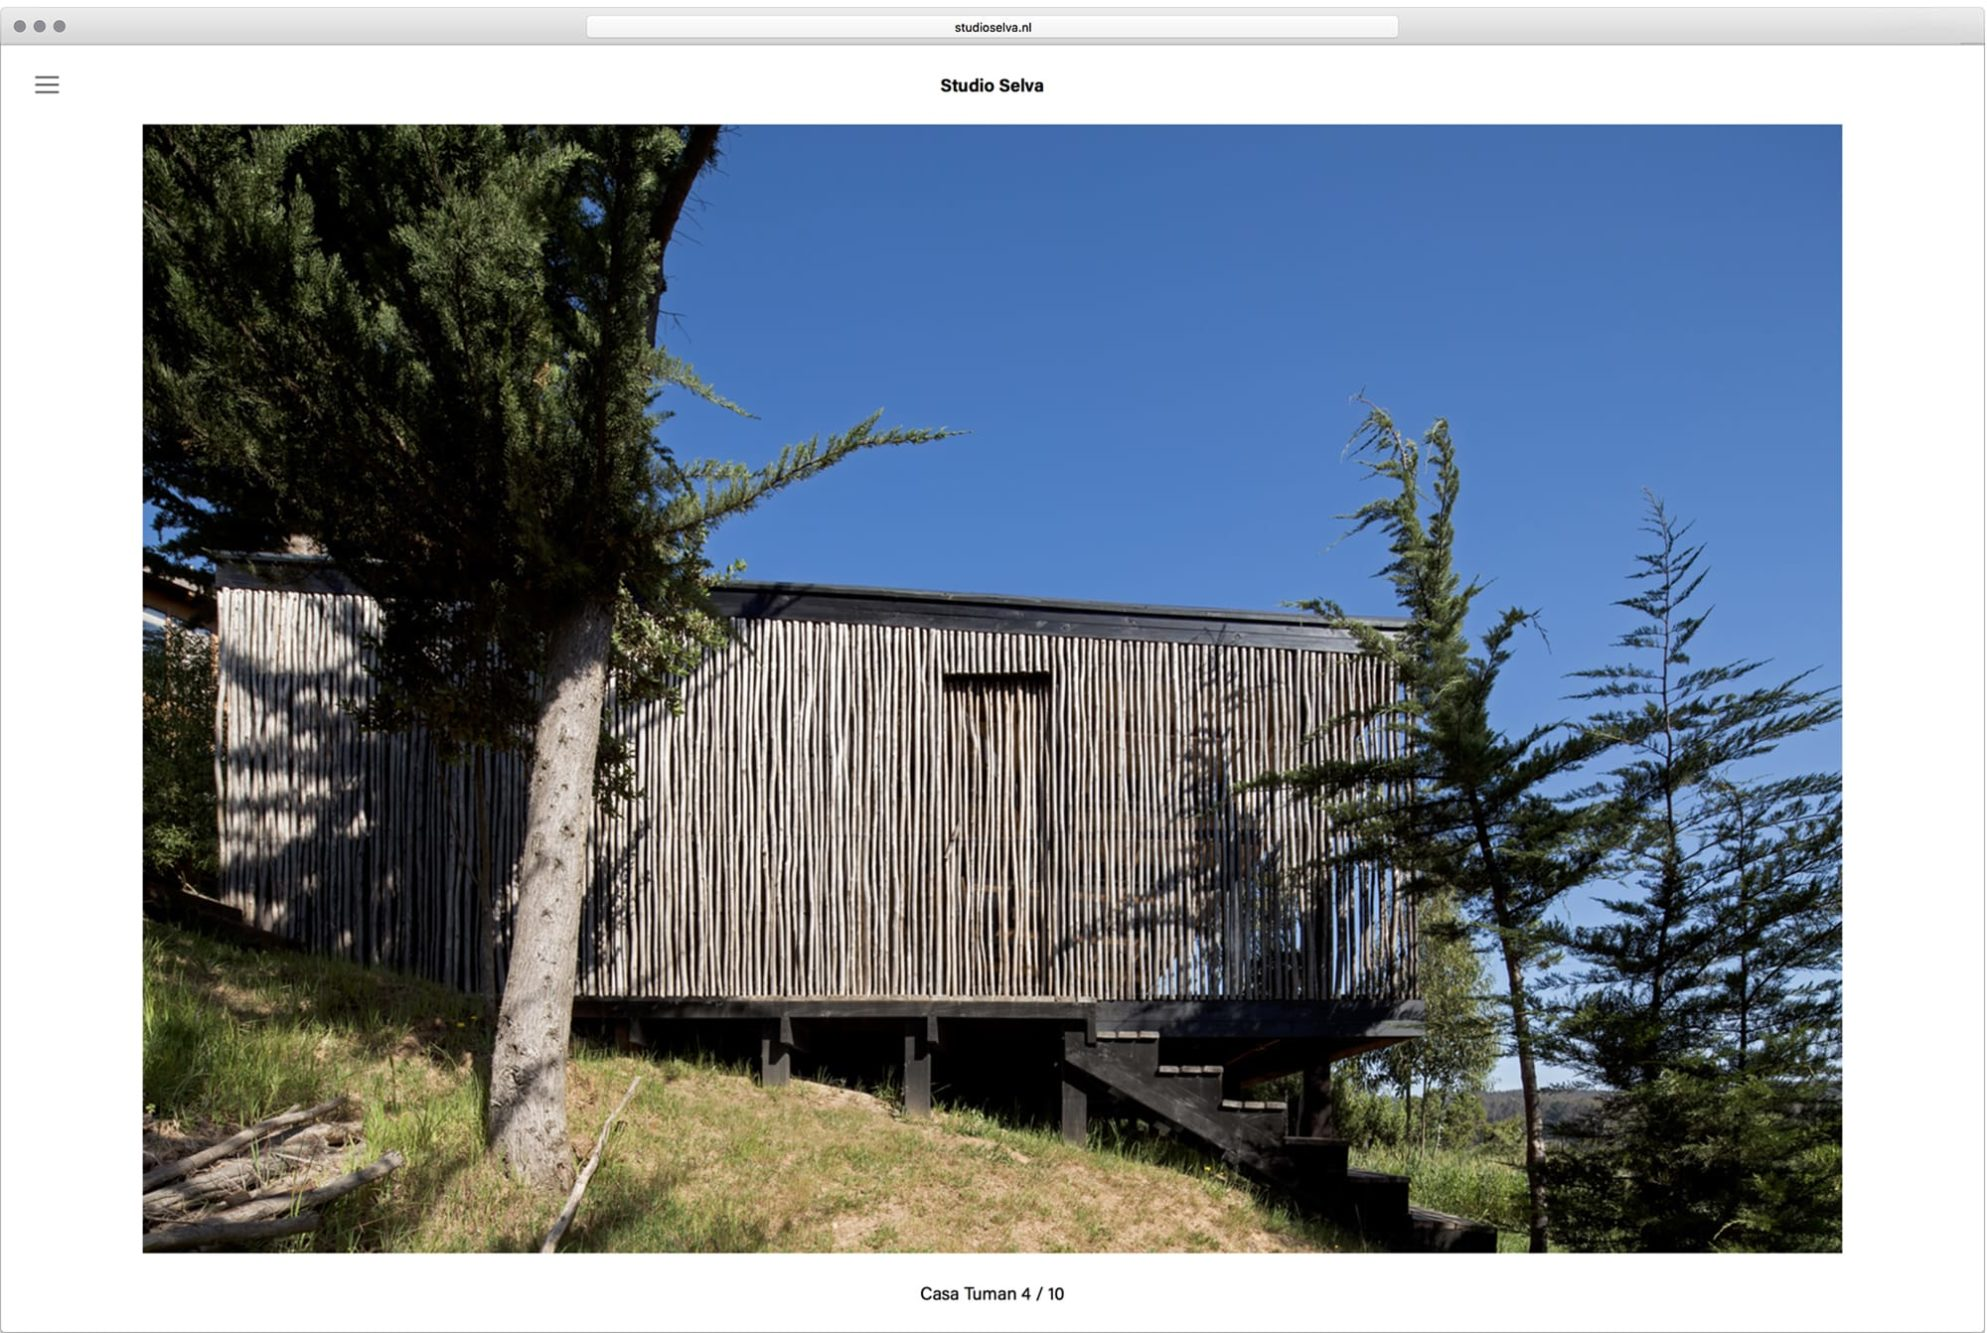 Haller Brun Studio Selva architecture website